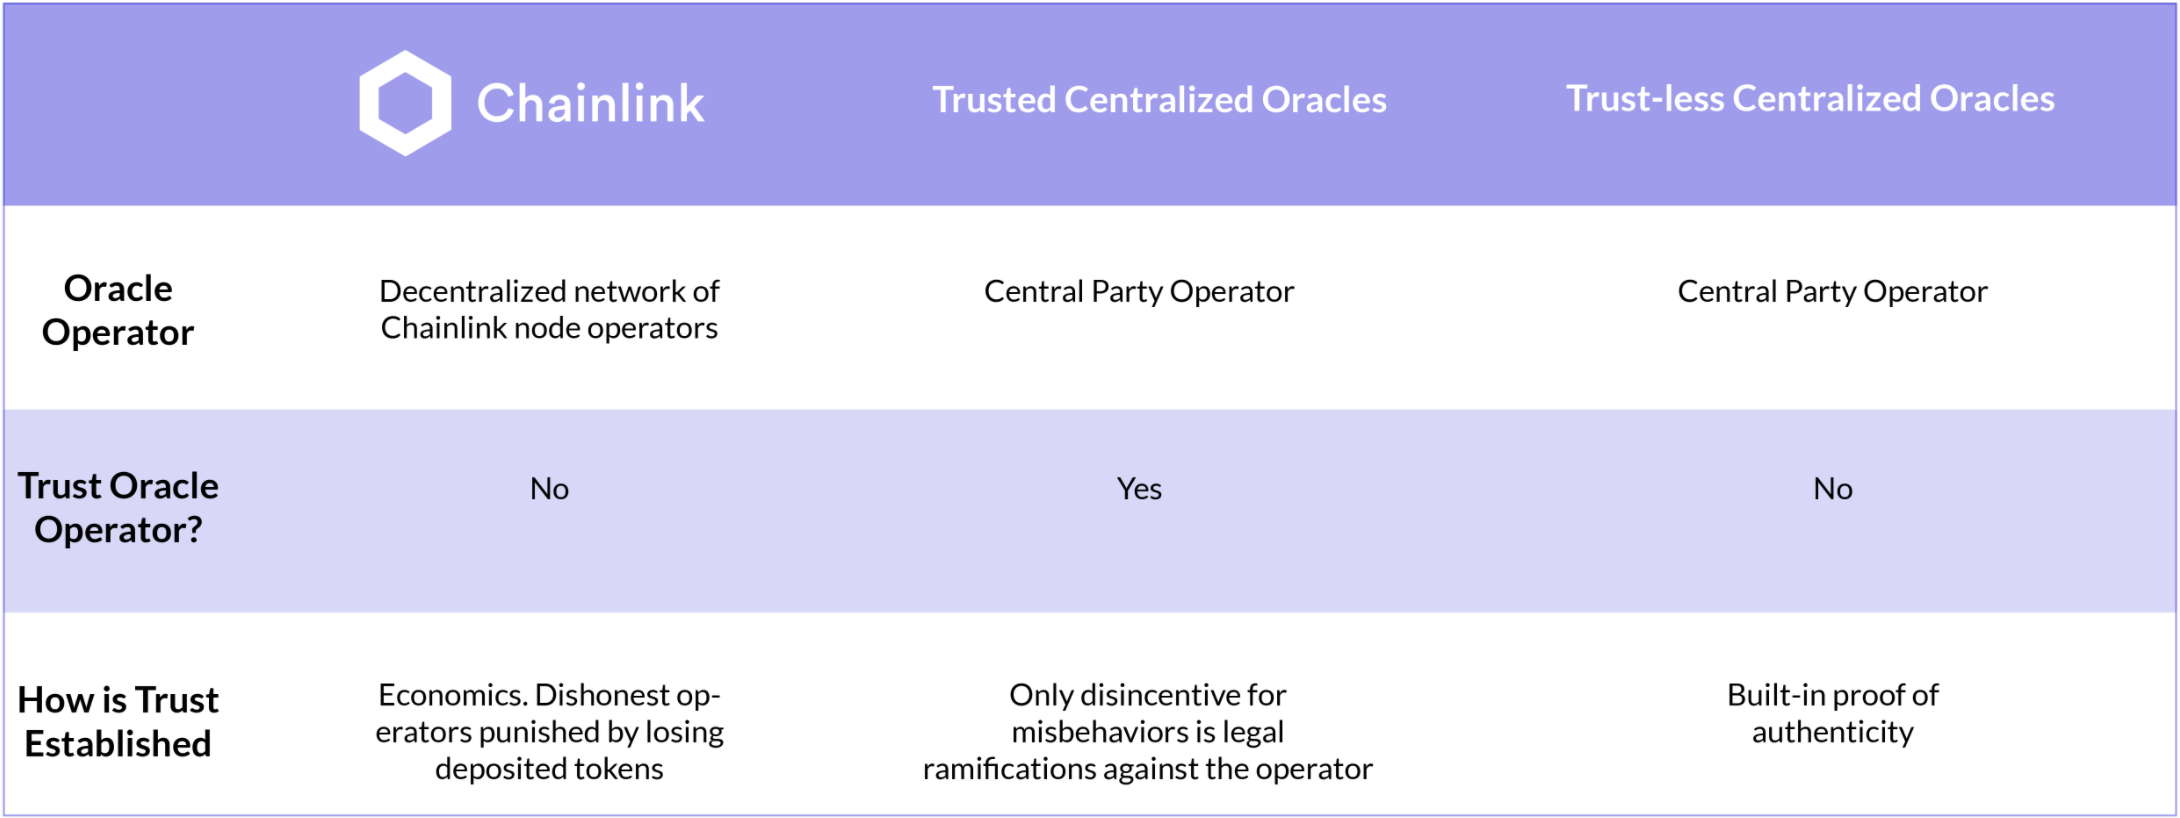 Chainlink vs Trusted and Trust-less Centralized Oracles